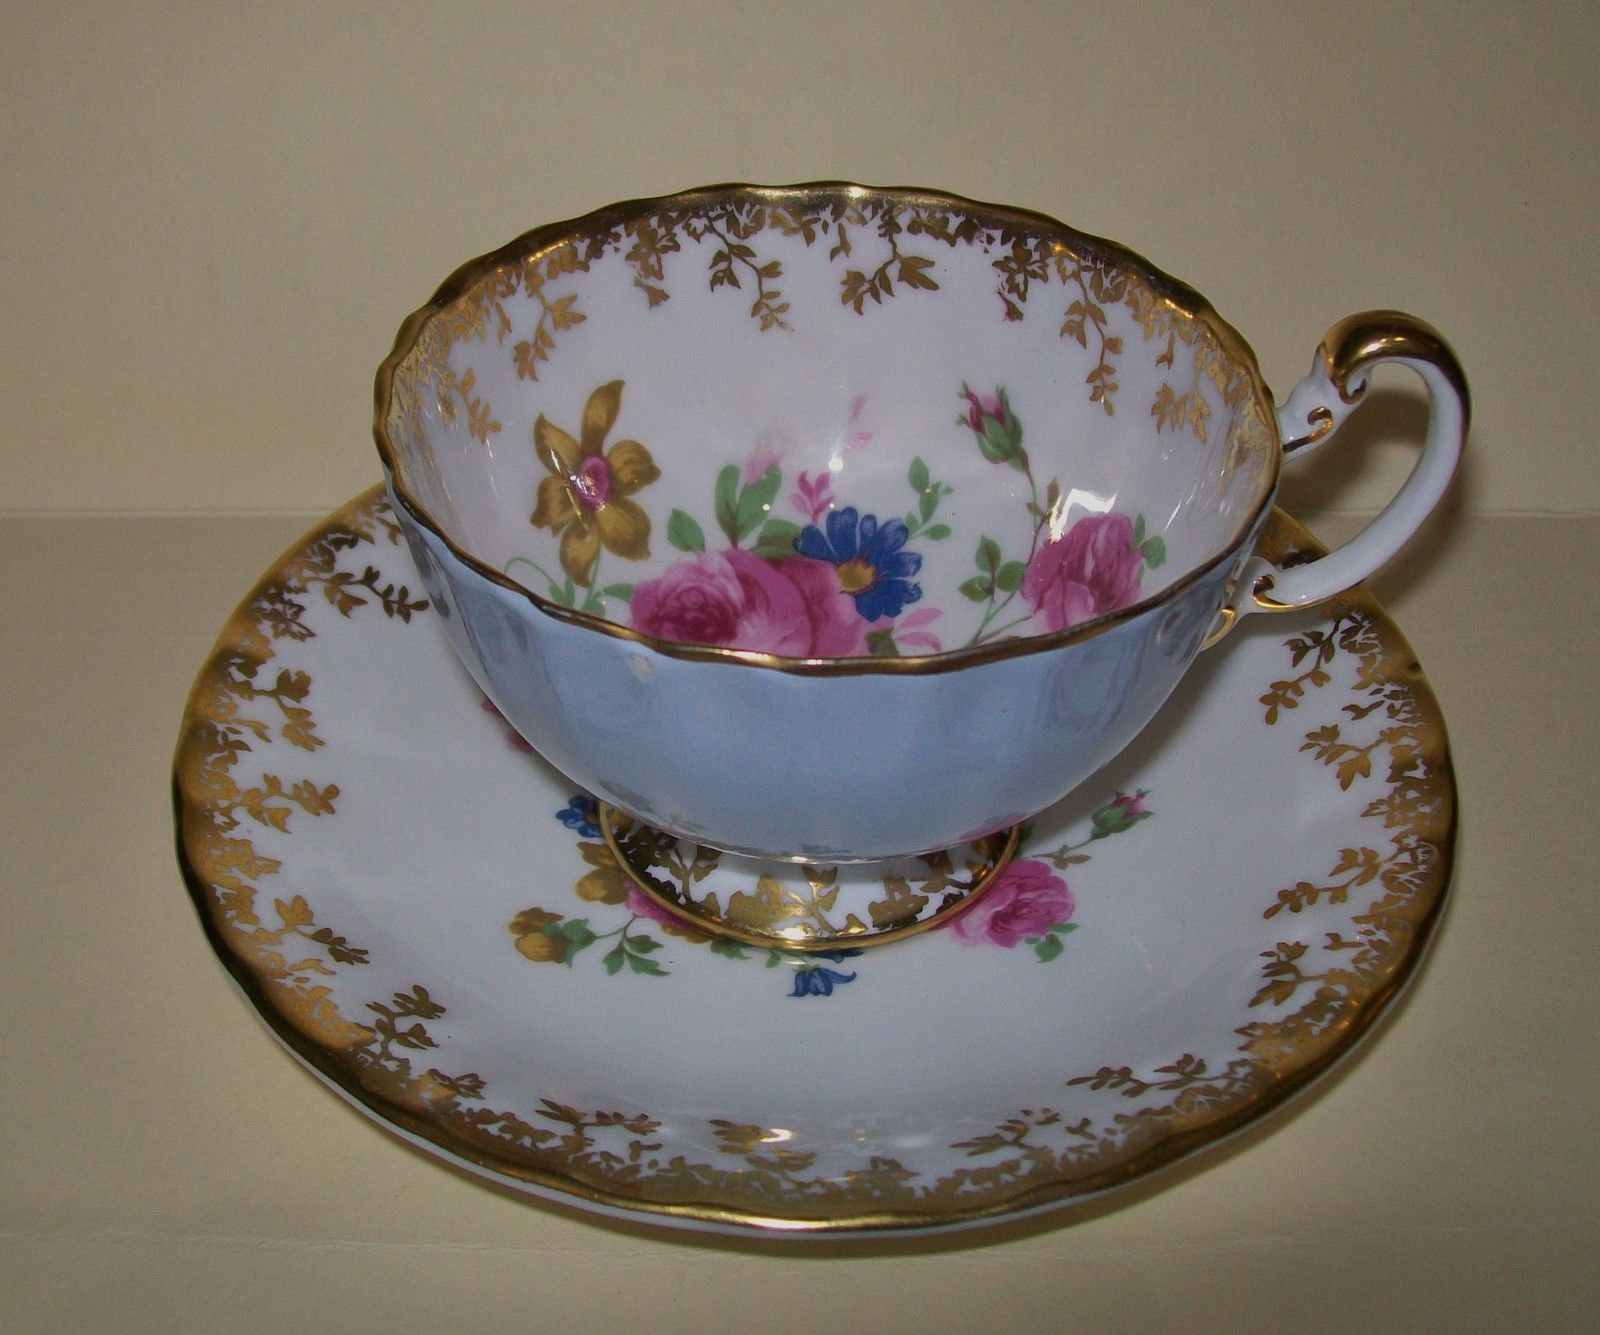 Vintage 'Aynsley' China DUO CUP Saucer SET Floral England | eBay